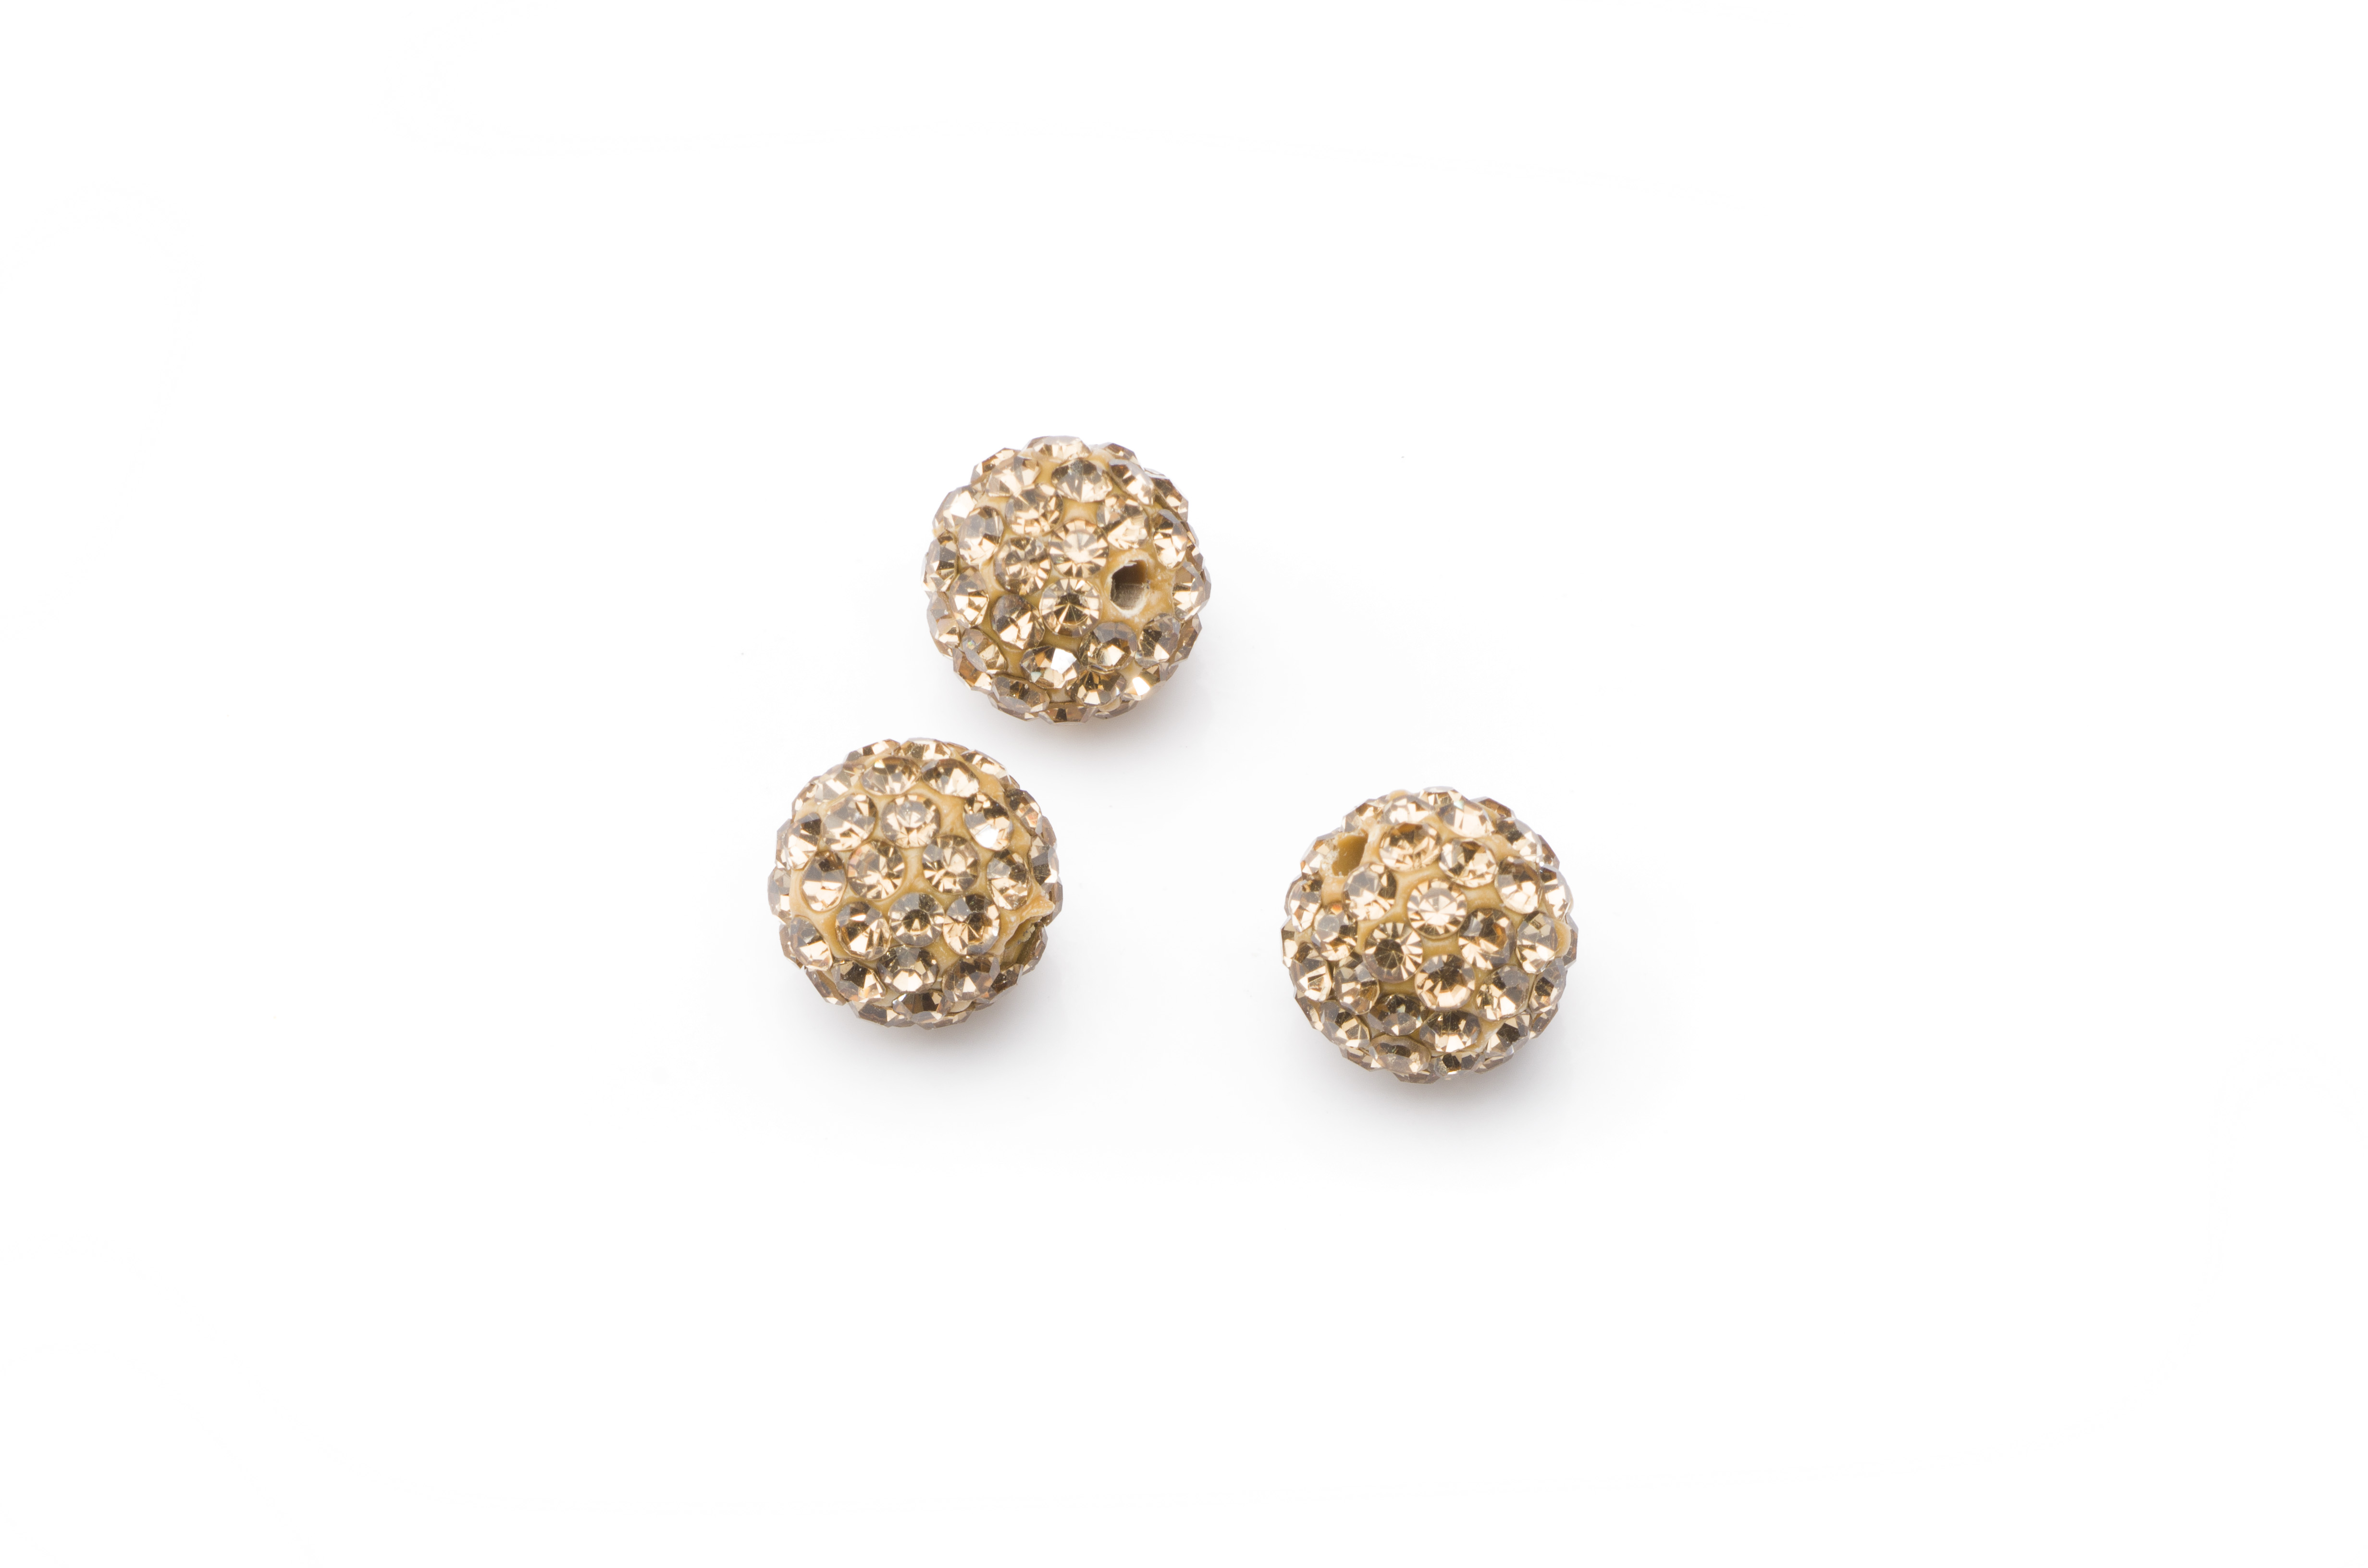 shamballa bead 10mm gold color x10pcs